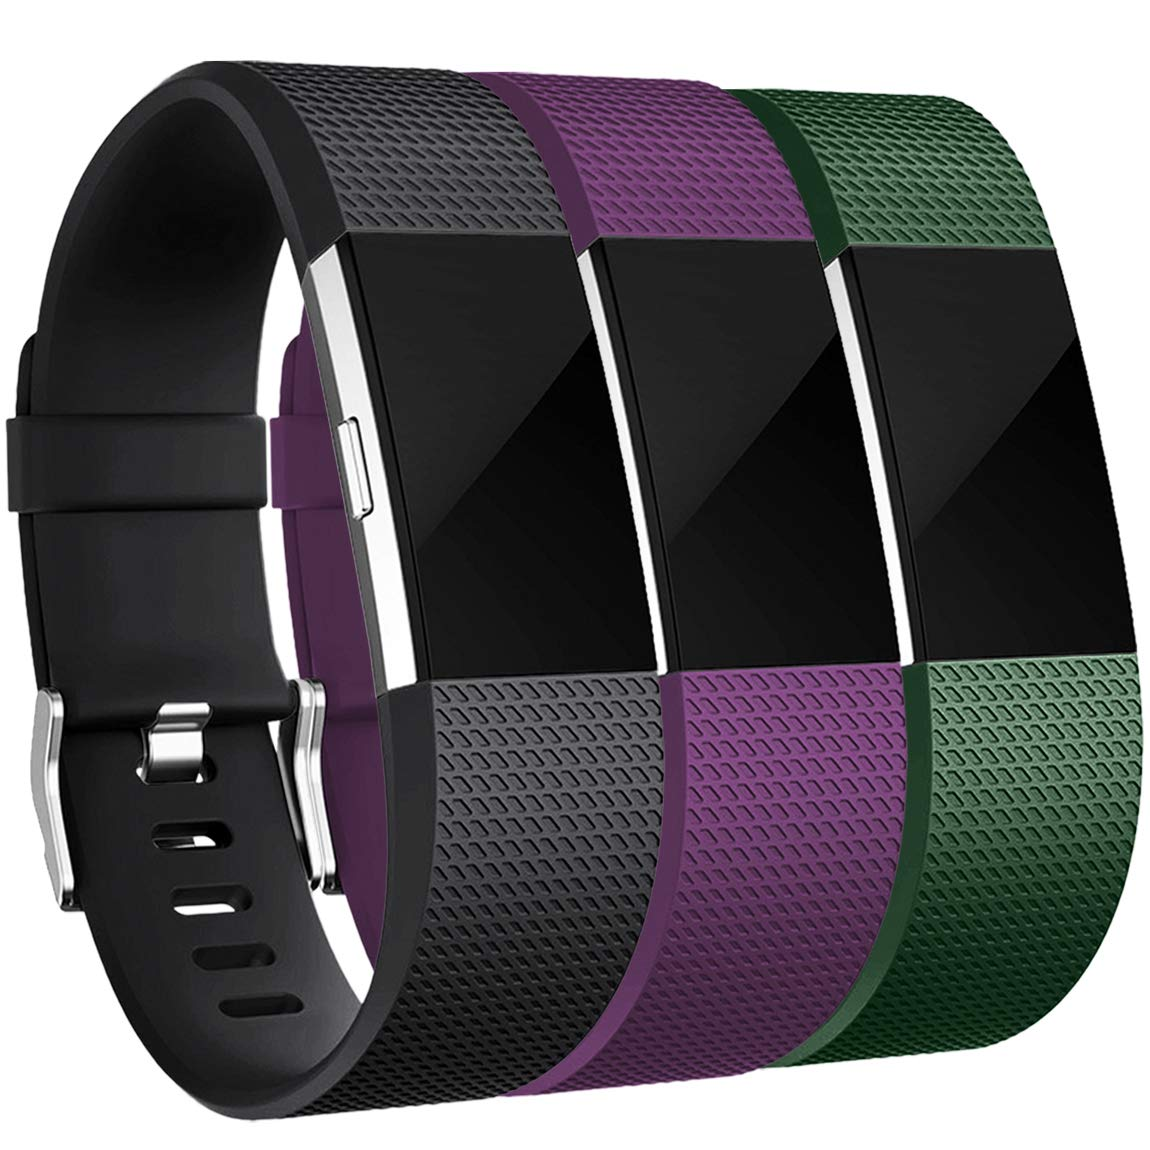 Maledan Bands Replacement Compatible with Fitbit Charge 2, 3-Pack, Small Plum/Green/Black